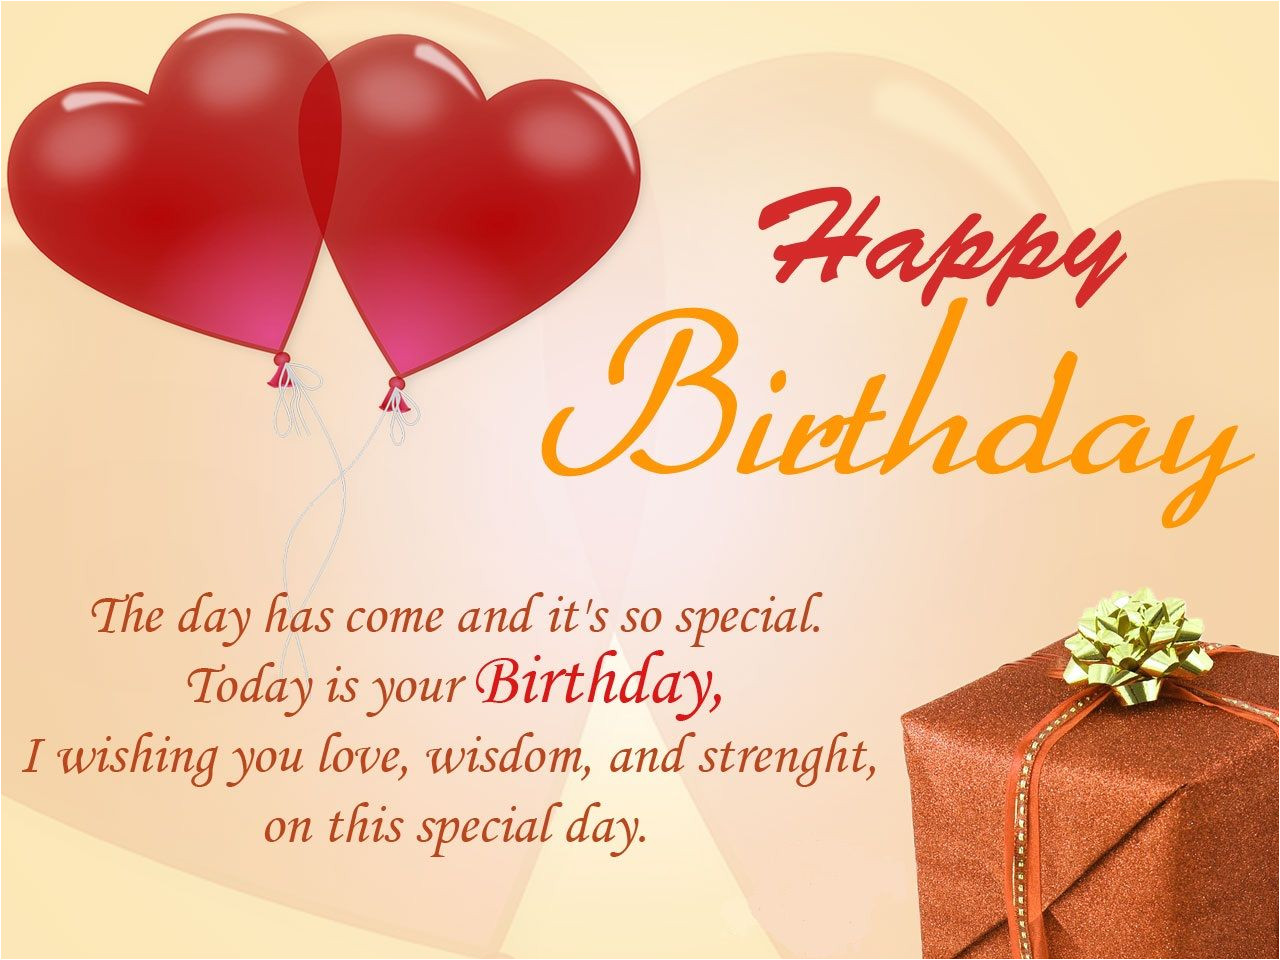 Card Birthday Wishes for Husband 27 Images Happy Birthday Wishes Quotes for Husband and Best